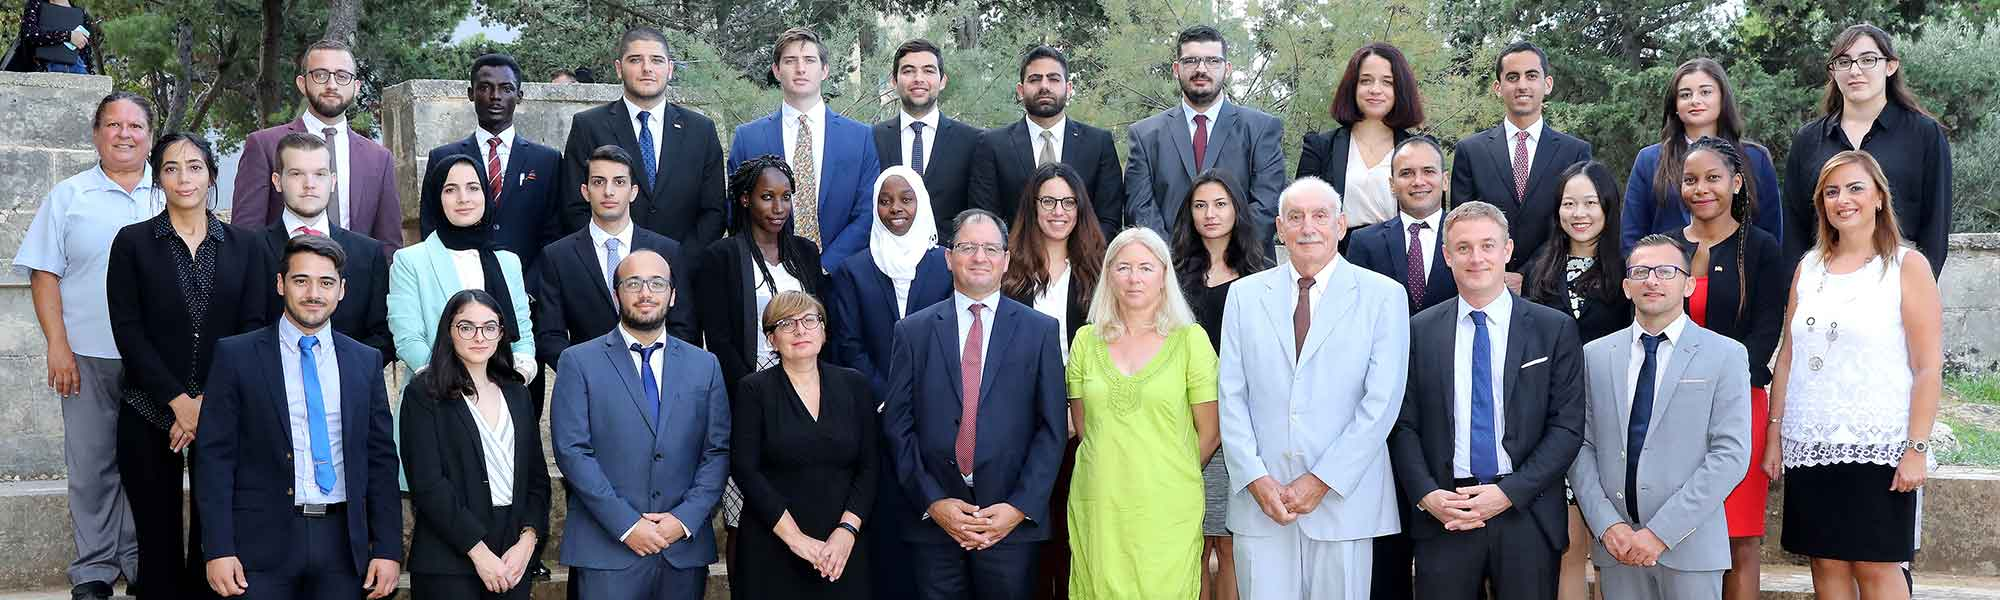 MEDAC students and staff - 2019